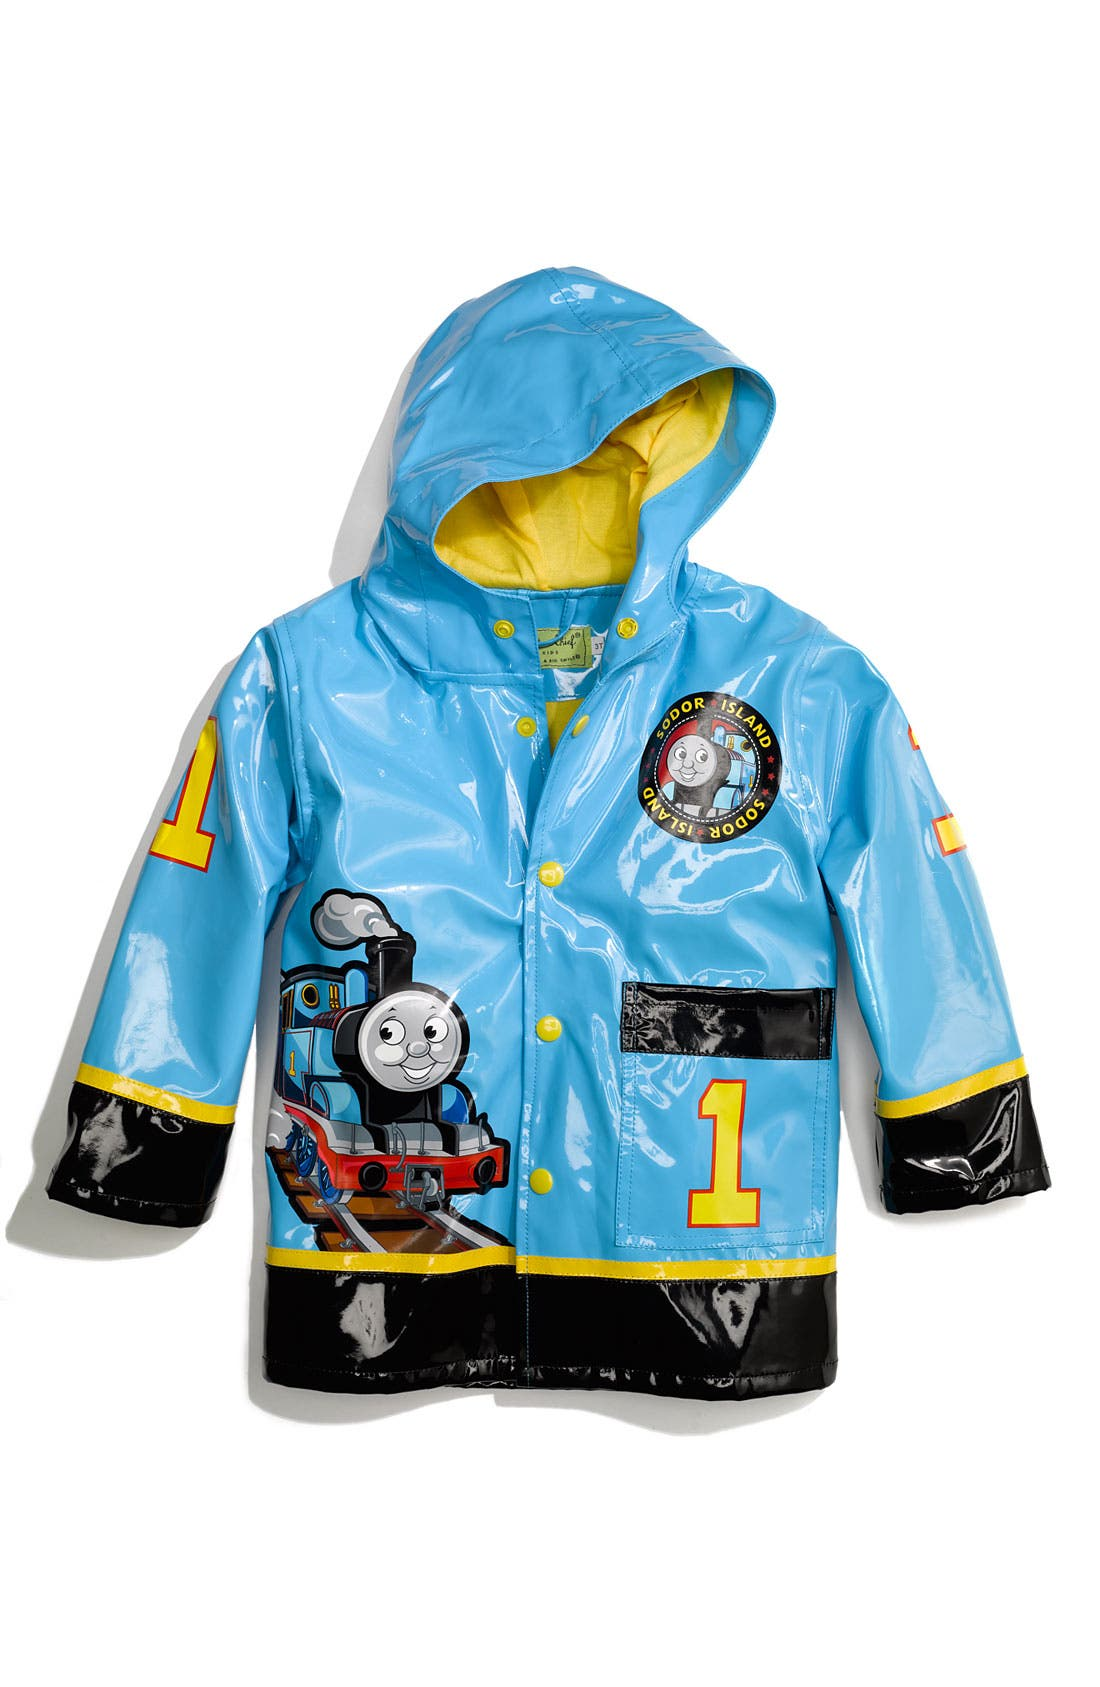 Main Image - Western Chief 'Thomas the Tank Engine®' Raincoat (Toddler Boys & Little Boys)